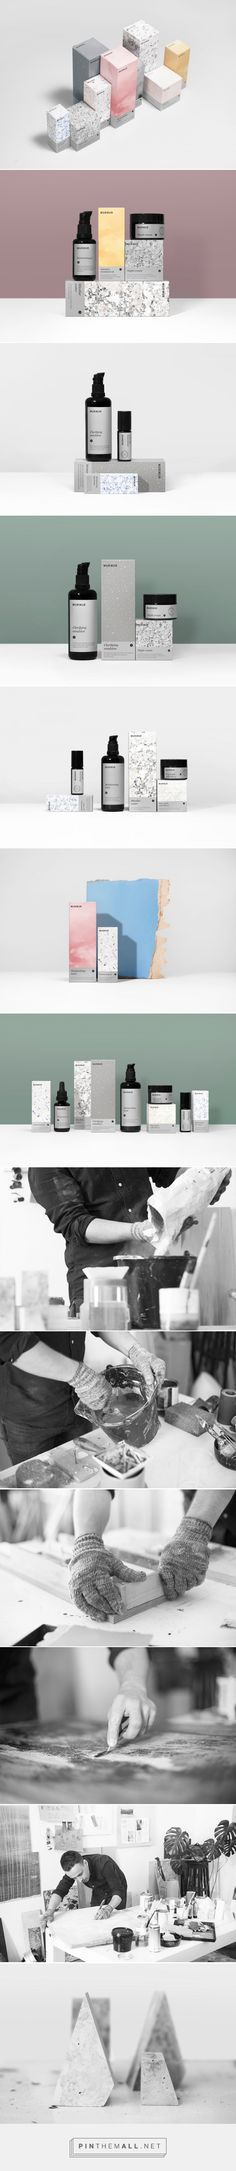 MURMUR - Packaging of the World - Creative Package Design Gallery - www.packagingofth...